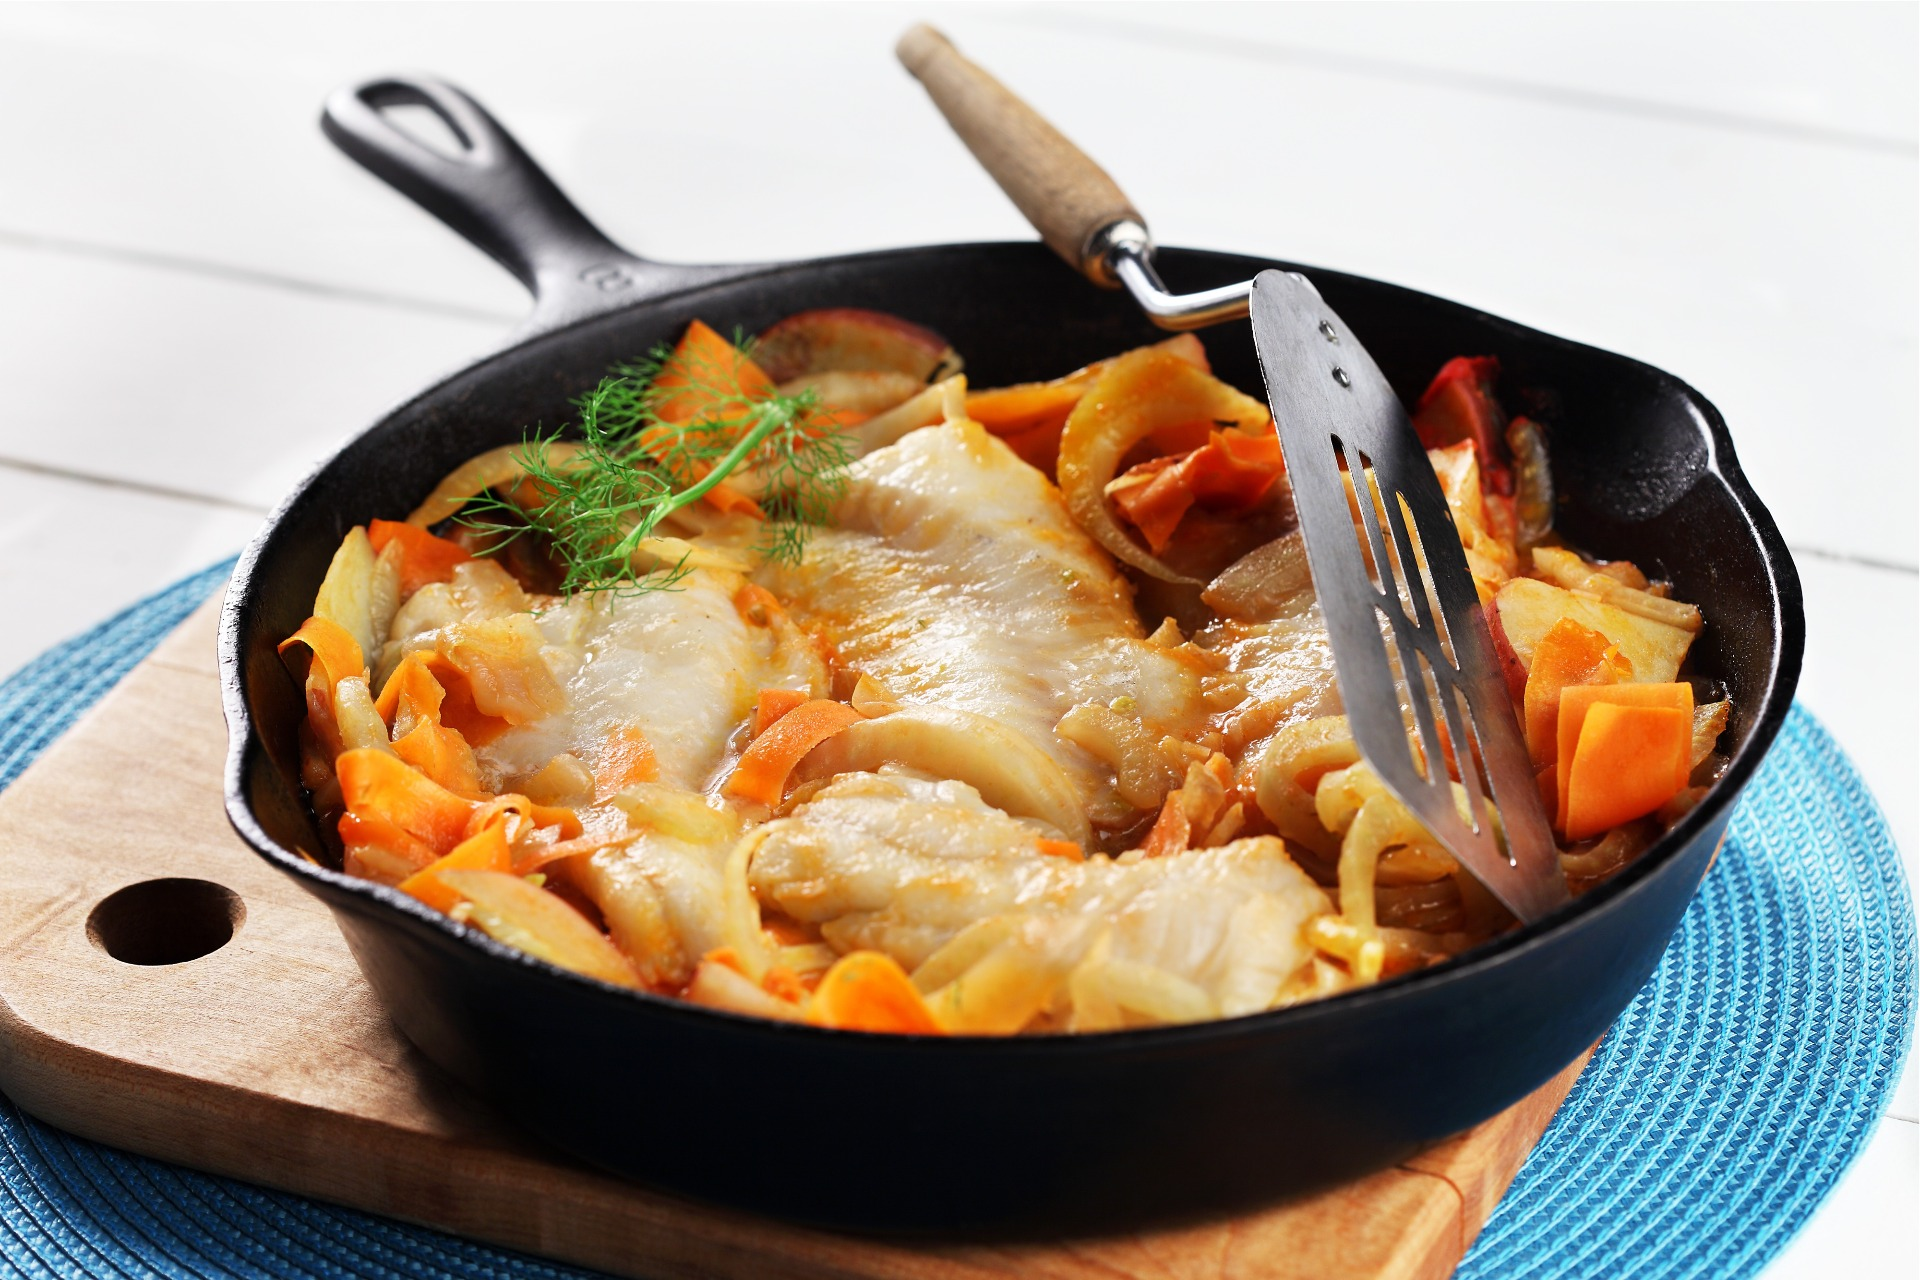 Skillet of cooked cod fillets, fennel potatoes and carrots